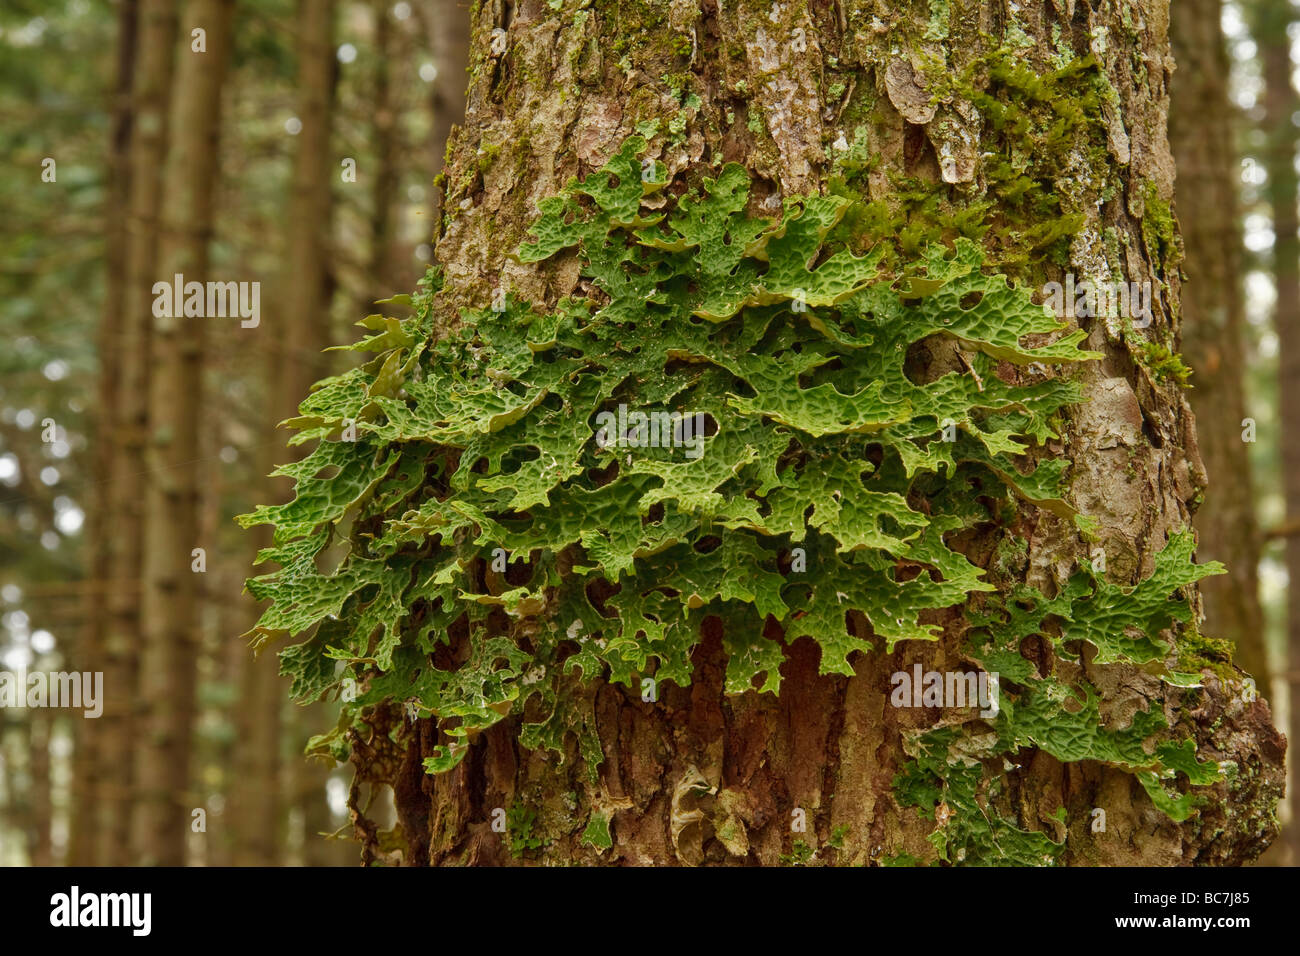 Lobaria pulmonaria lichen fungus consisting of an ascomycete fungus and a green algae - Stock Image